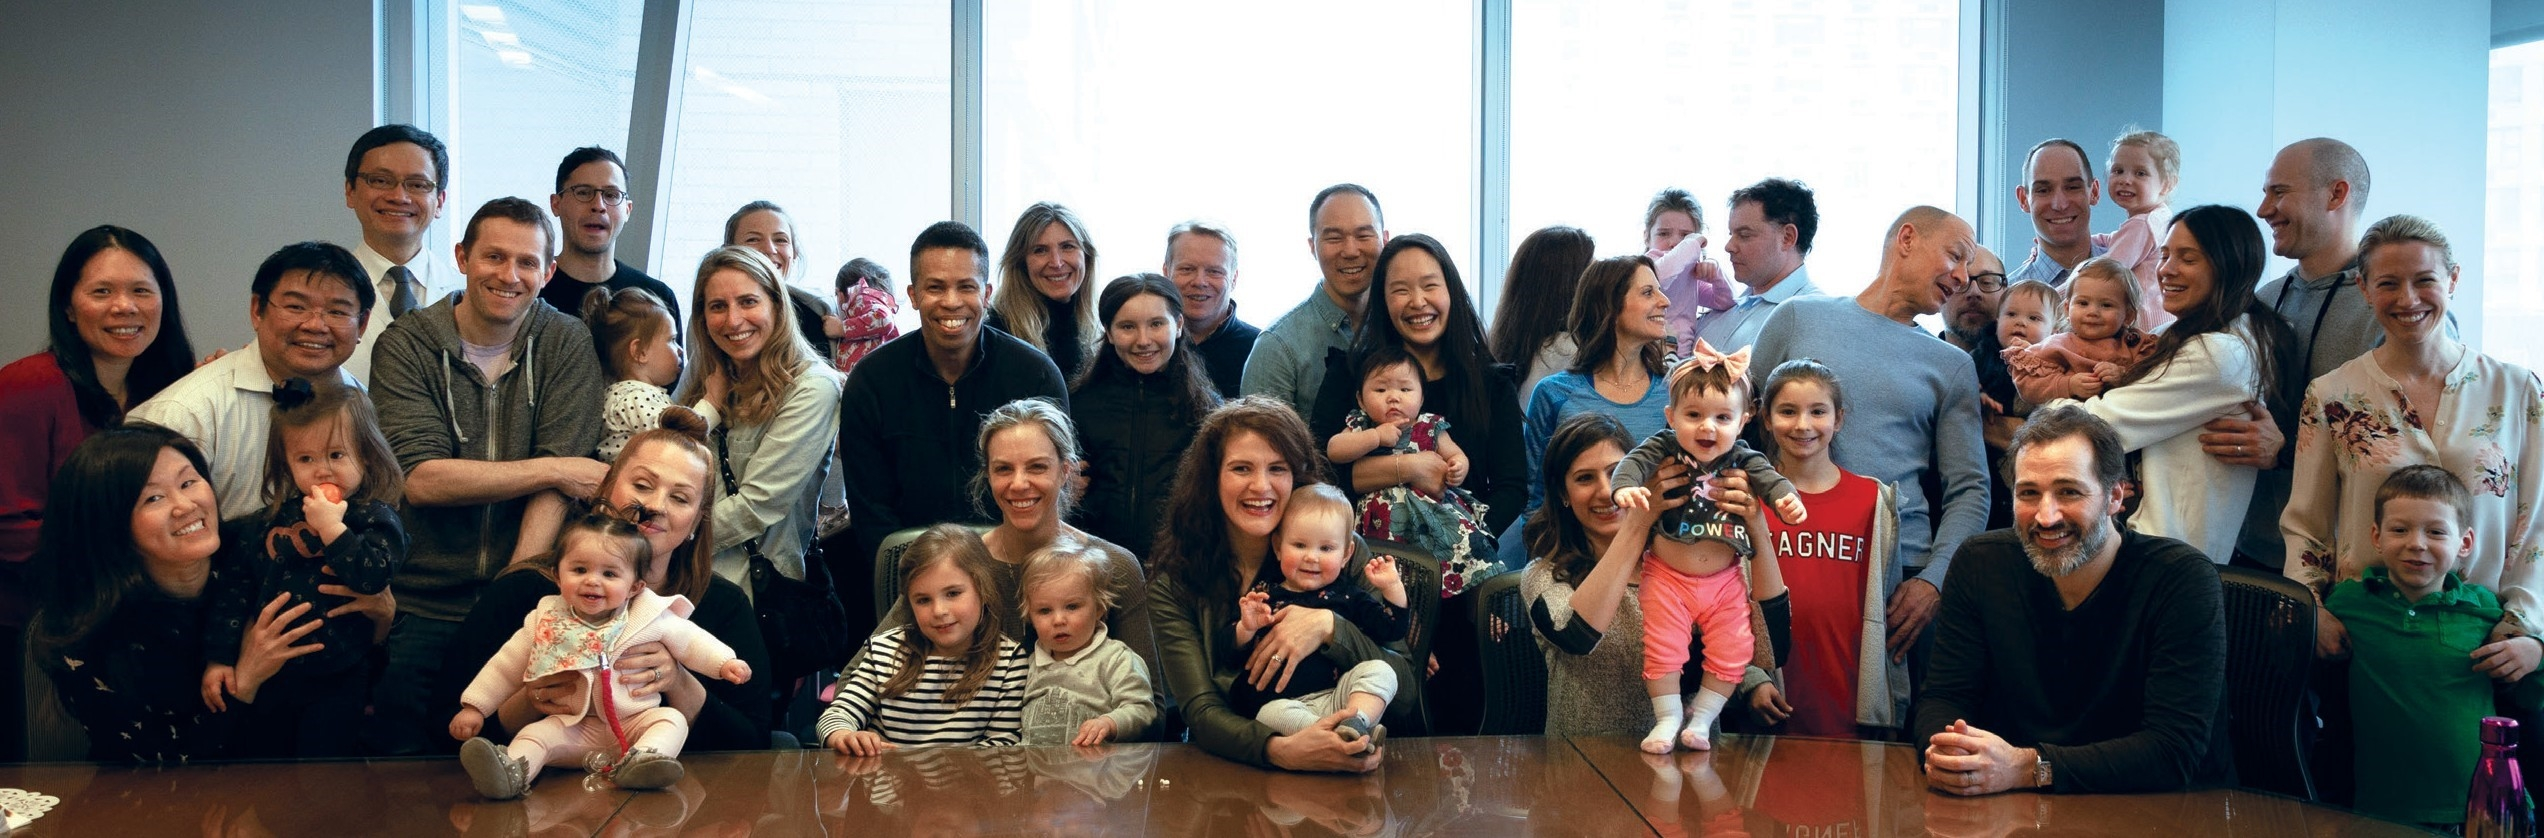 a large group with babies posing for a photo.